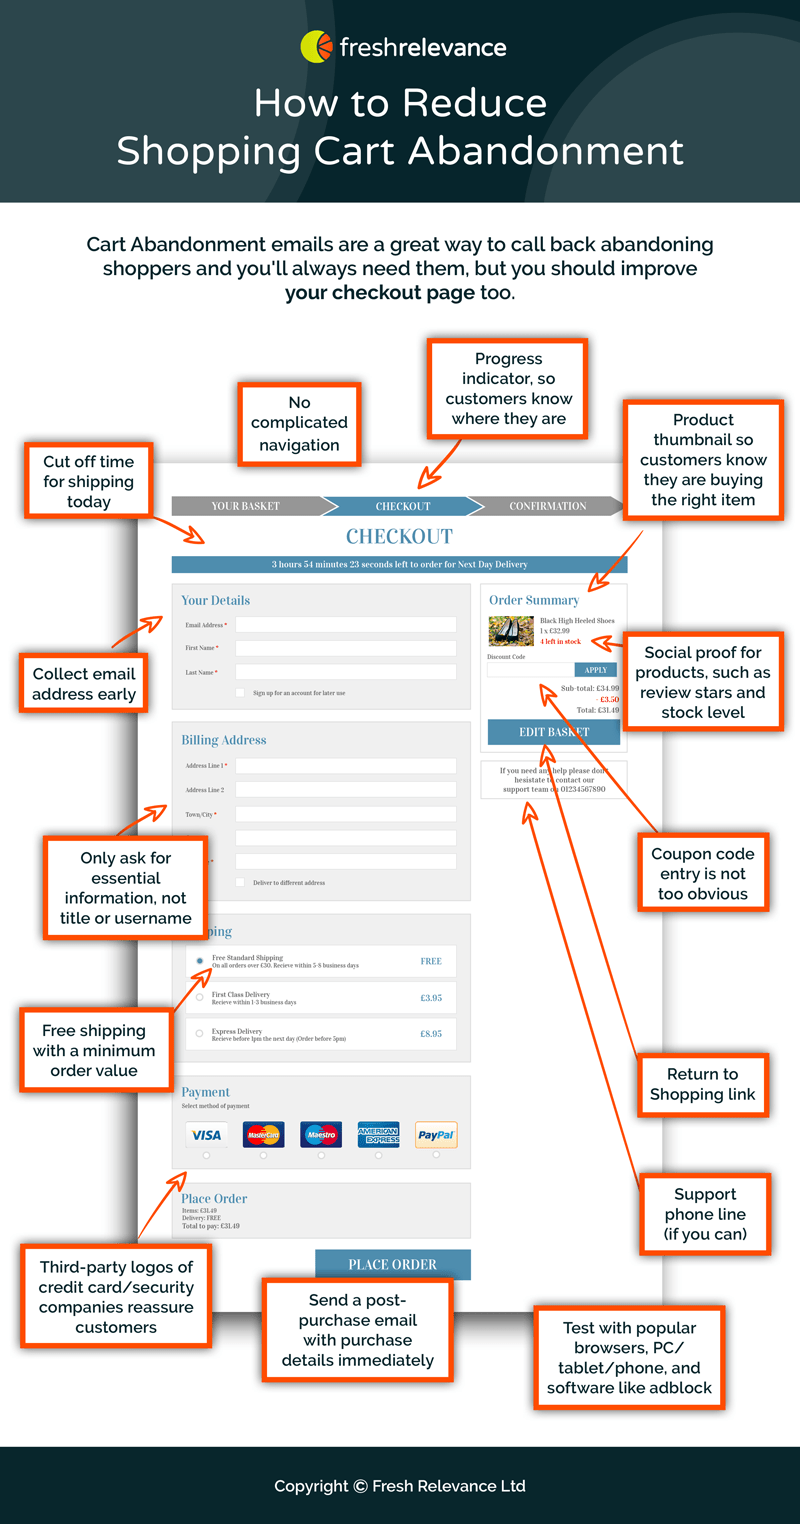 How to Reduce Shopping Cart Abandonment Cart Abandonment emails are a great way to call back abandoning shoppers and you'll always need them, but you should improve your checkout page too* No complicated navigation* Progress indicator, so customers know where they are* Return to Shopping link* Product thumbnails so customers know they are buying the right item* Social proof for products, such as review stars and stock level* Cutoff time for shipping today.* Collect email address early* Only ask for essential information - do you really need title and username?* Support phone line (if you can do it)* Free shipping, with a minimum order value* Coupon code entry is not too obvious * Many payment options* Third-party logos of credit cards and security companies reassure customers* Send a post-purchase email with purchase details immediately* Test with popular browsers, PC/tablet/phone, and software like adblock.